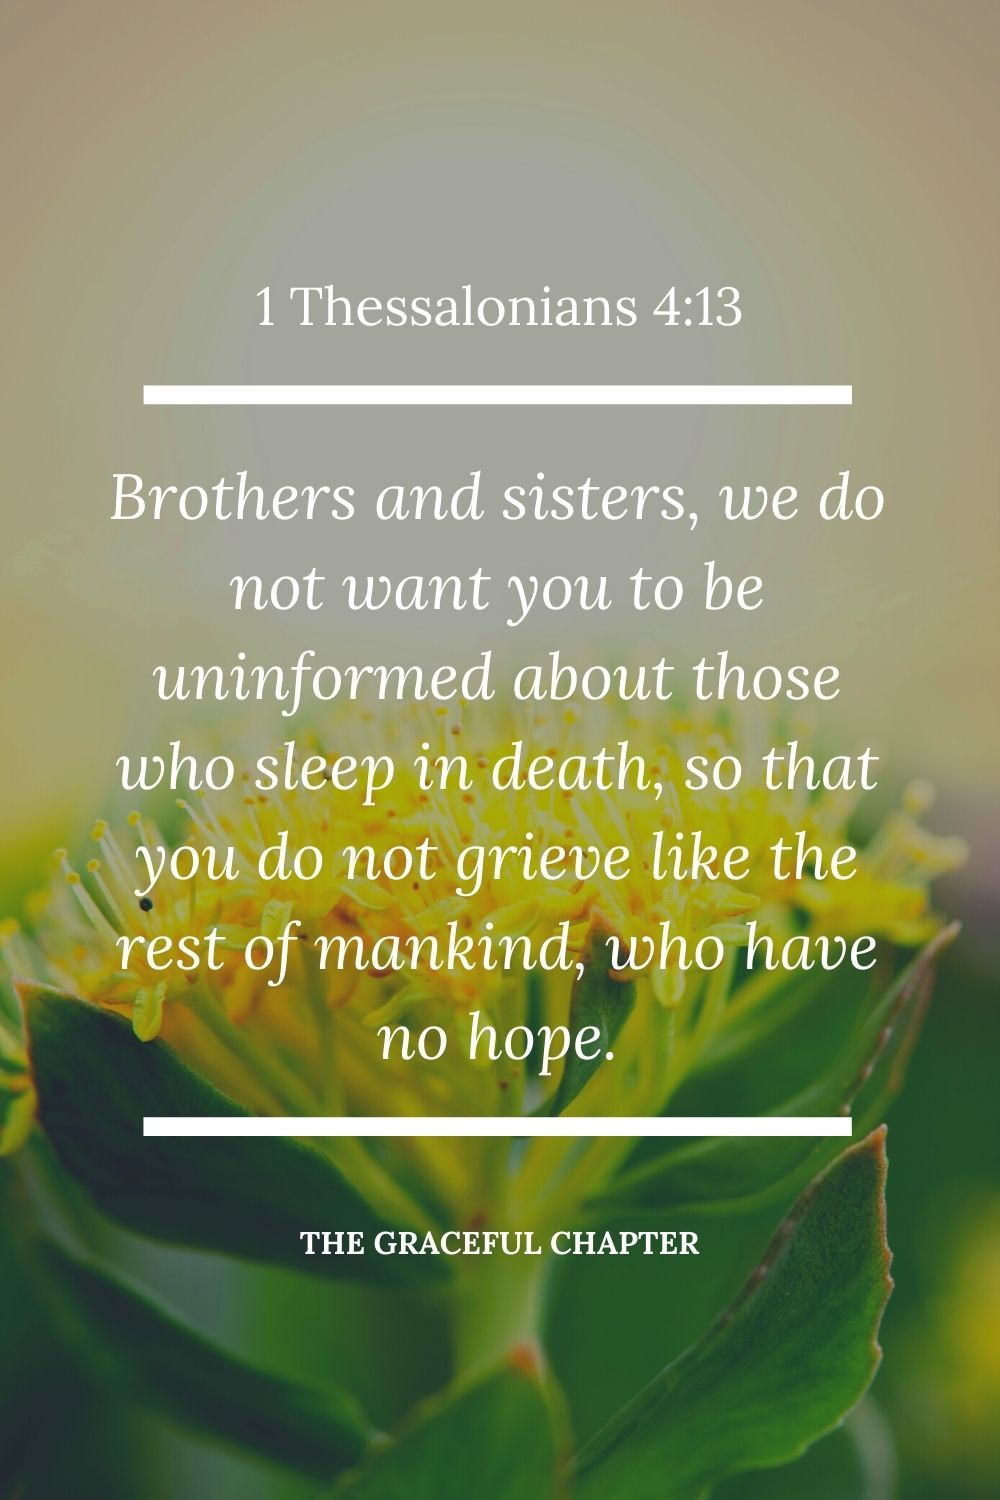 Brothers and sisters, we do not want you to be uninformed about those who sleep in death, so that you do not grieve like the rest of mankind, who have no hope.1 Thessalonians 4:13